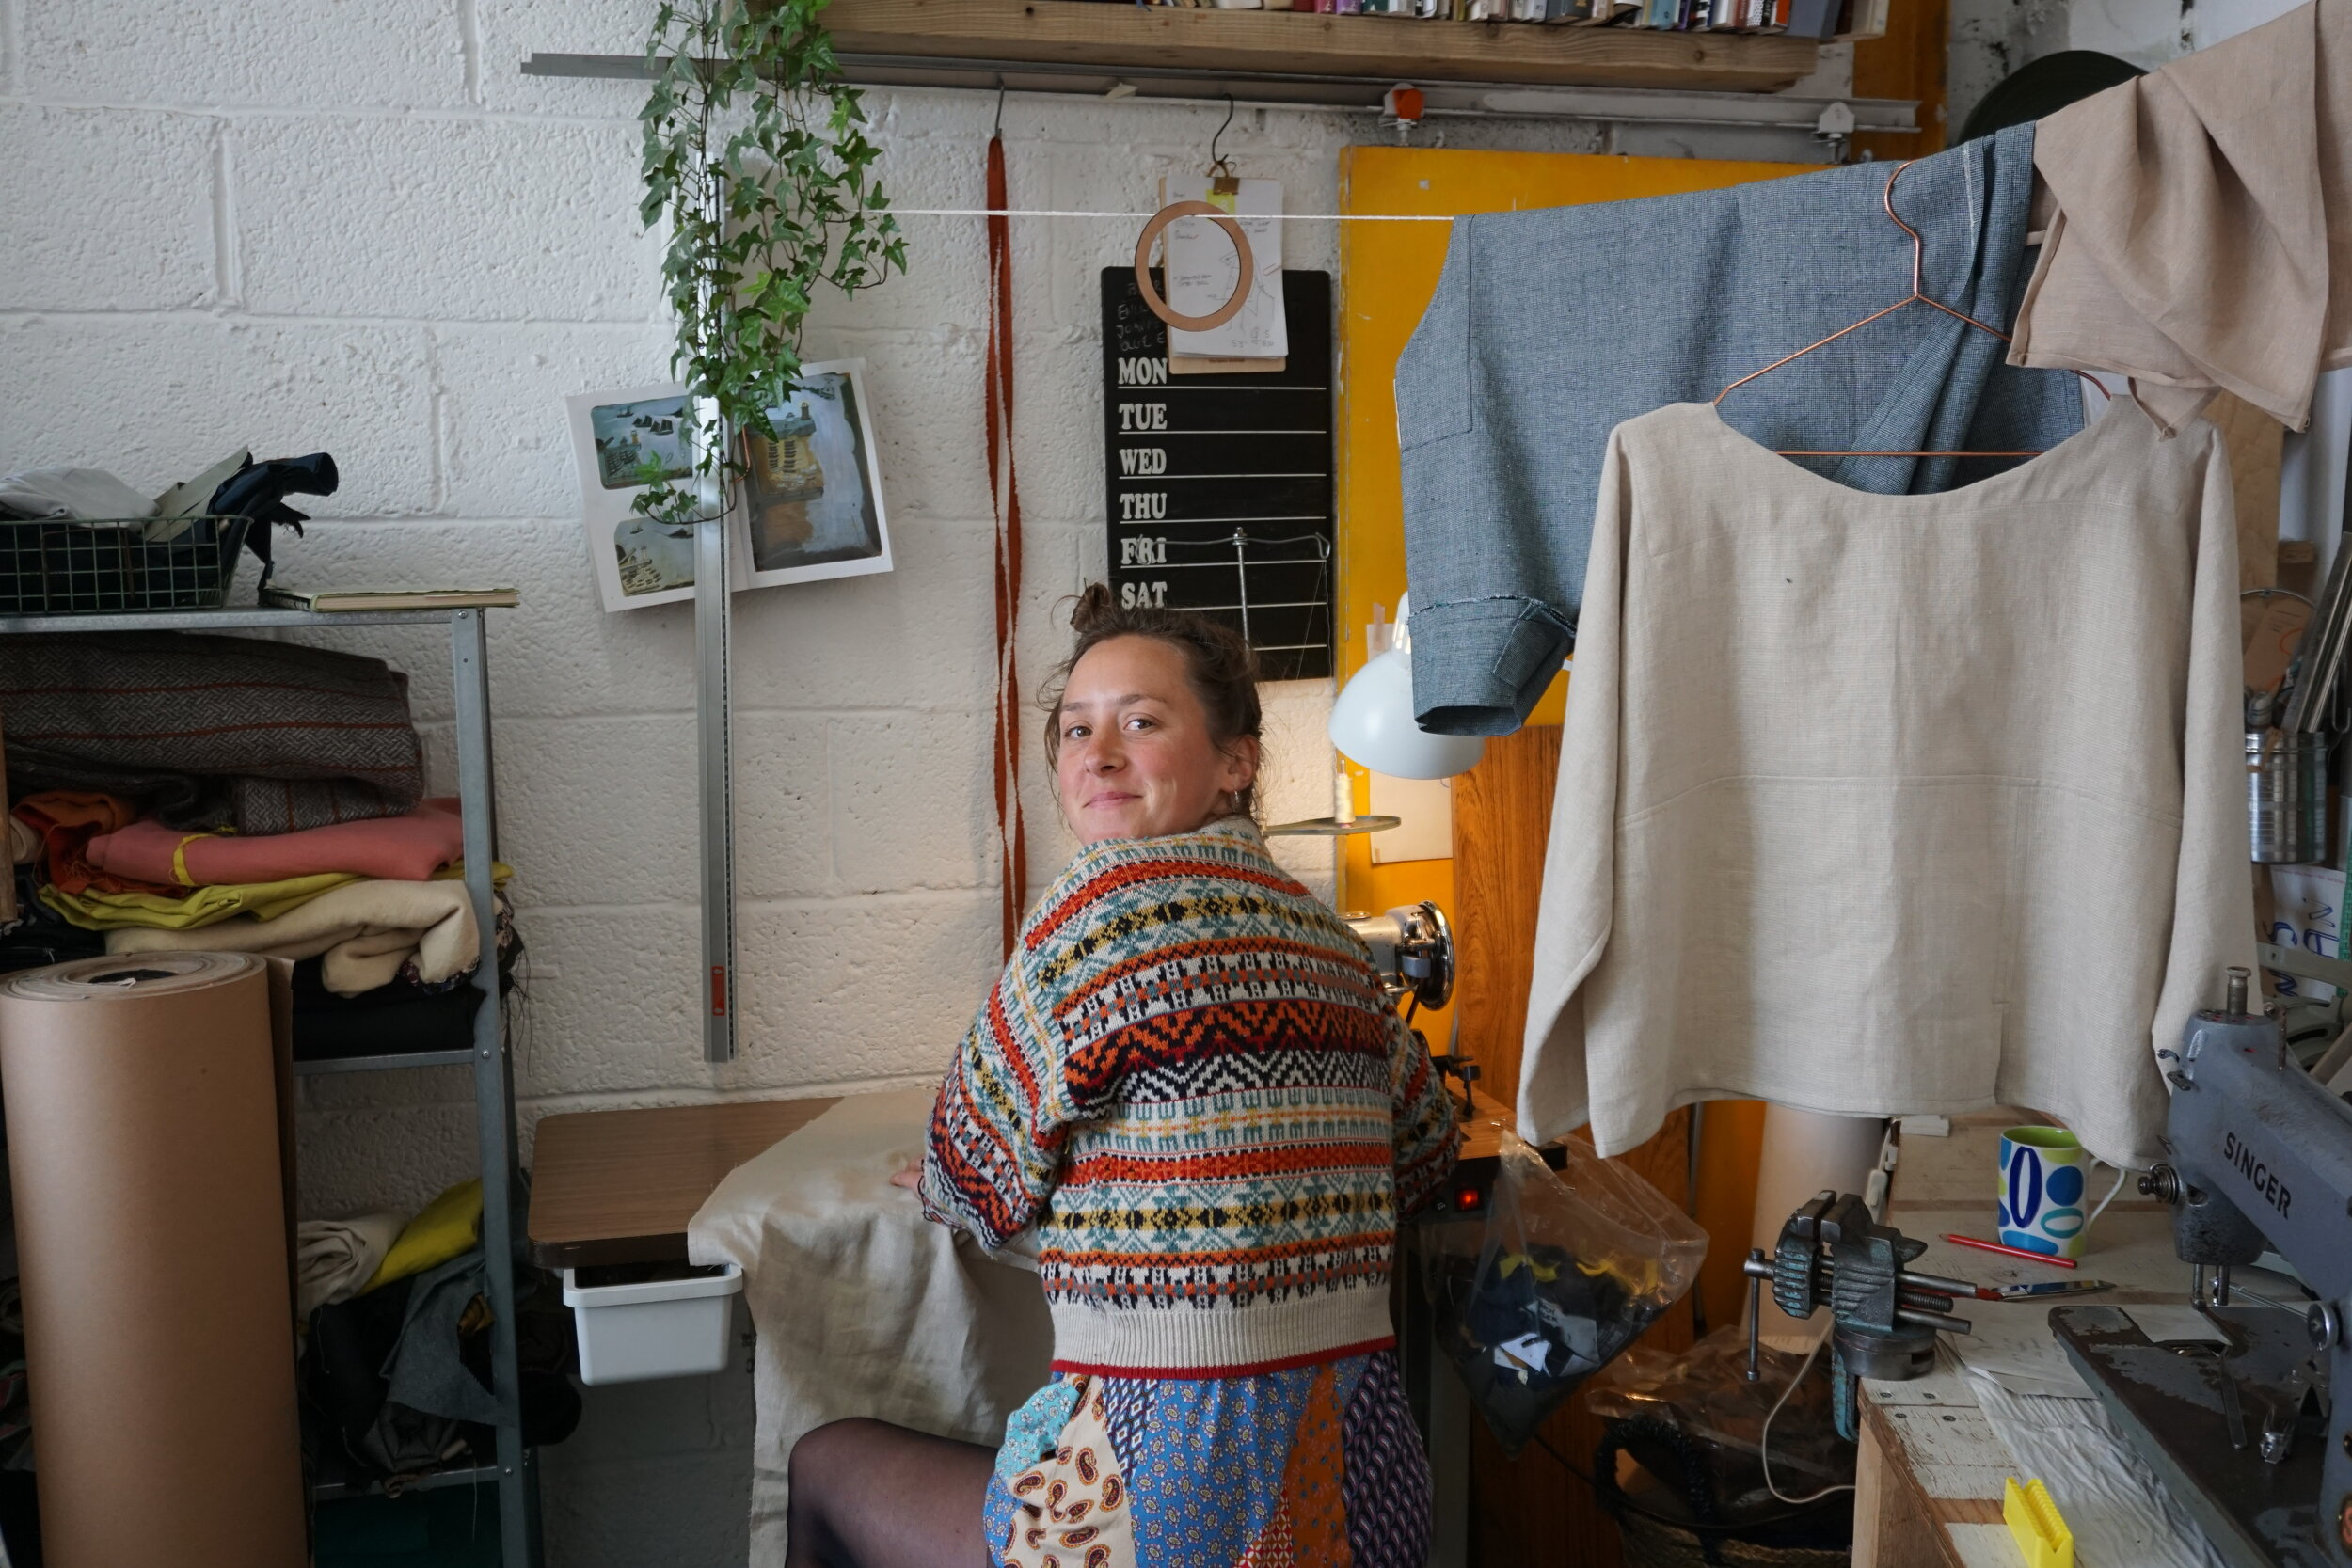 - skilled seamstress Laura griffin helping me sew in the studio!